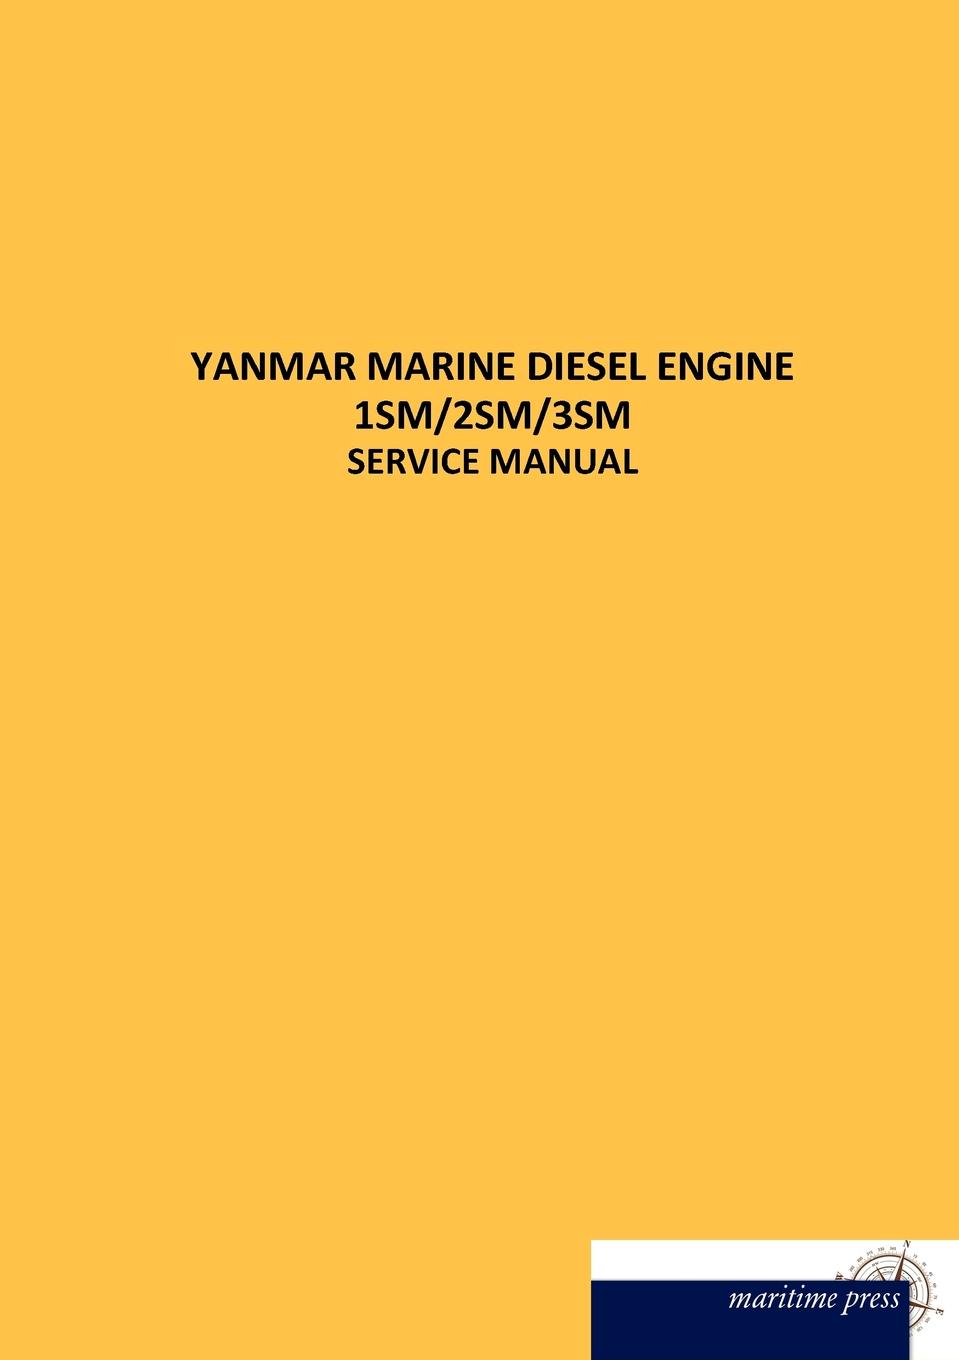 N. N. YANMAR MARINE DIESEL ENGINE 1SM/2SM/3SM thor fossen i handbook of marine craft hydrodynamics and motion control